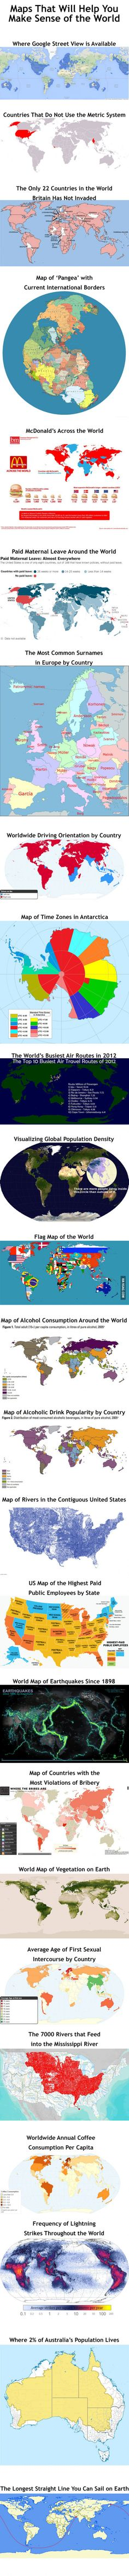 Maps That Will Help You Make Sense Of The World   /   9G